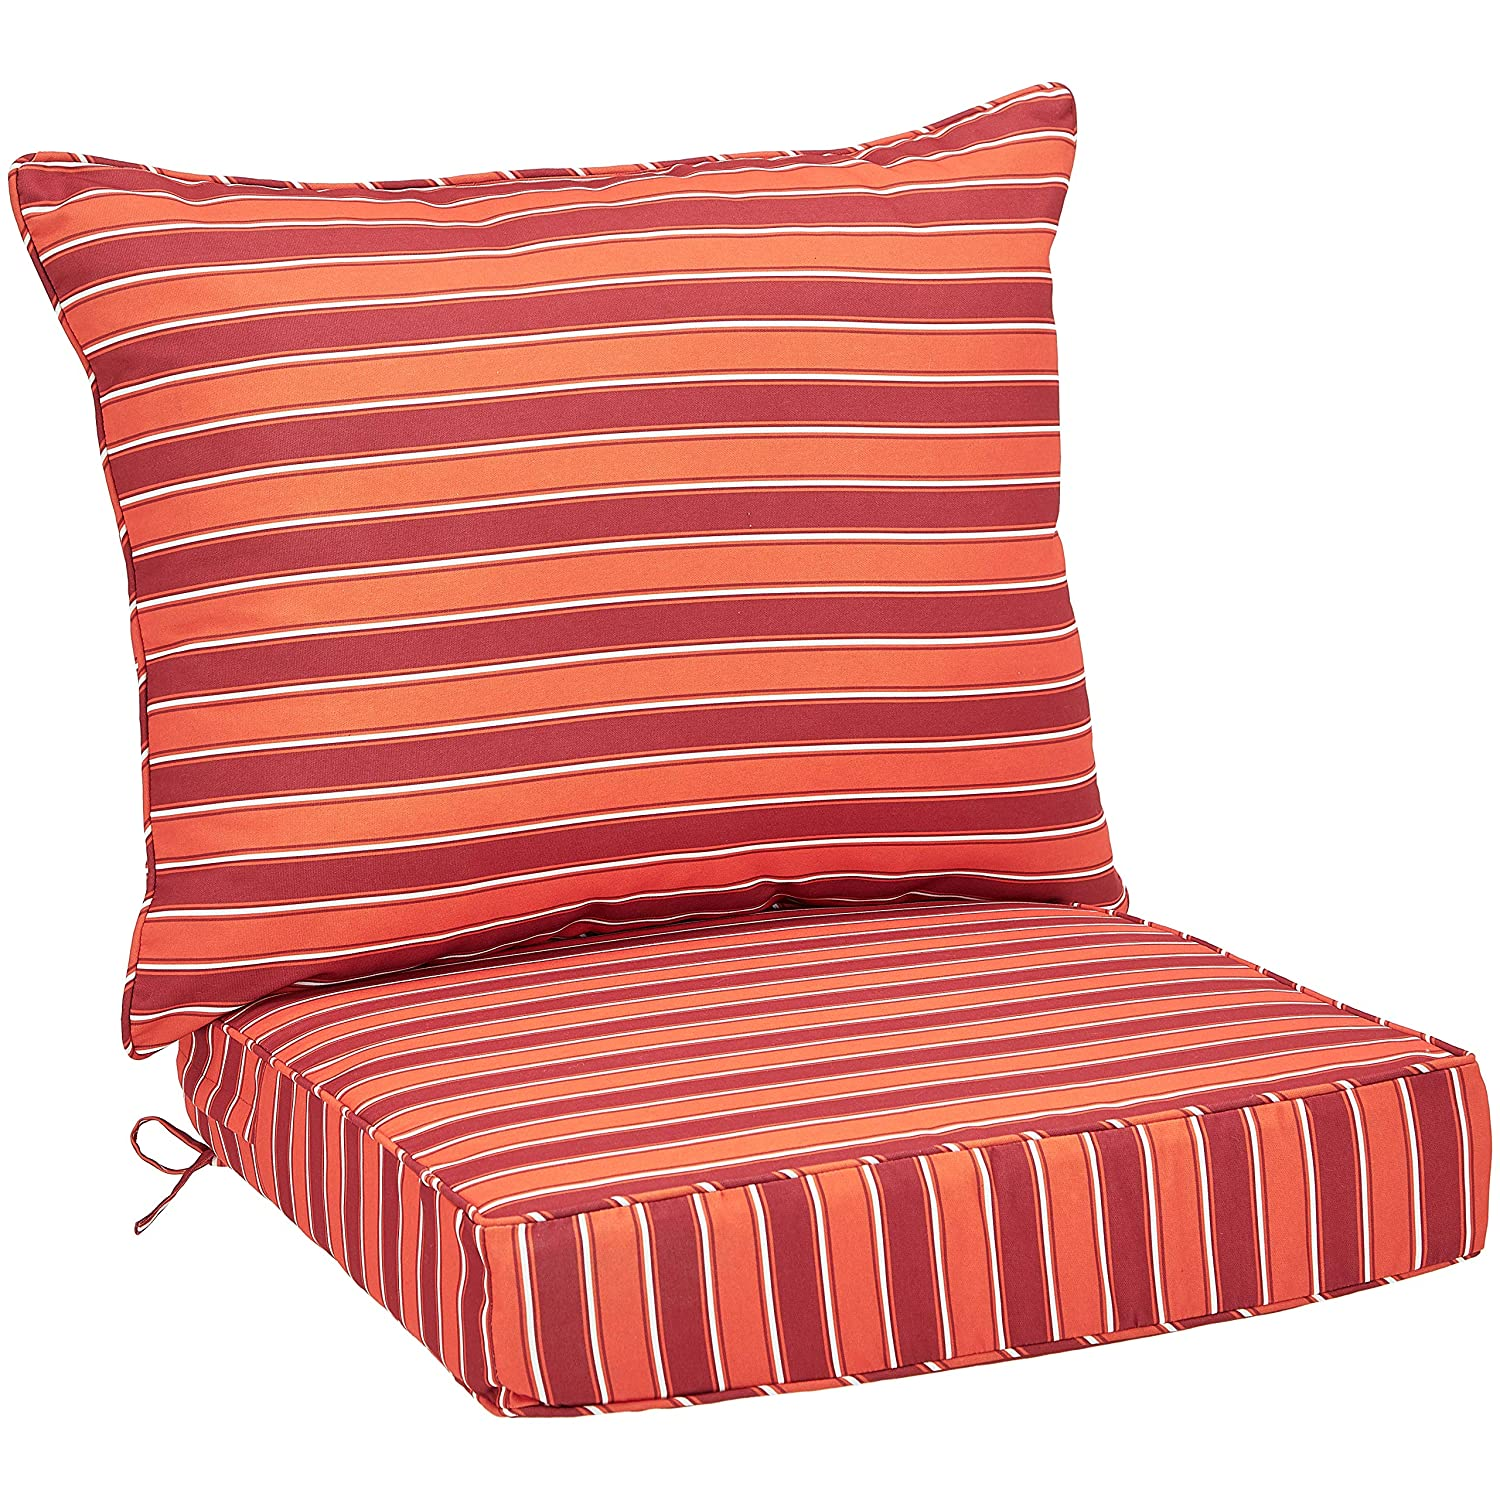 AmazonBasics Deep Seat Patio Seat and Back Cushion- Red Stripes